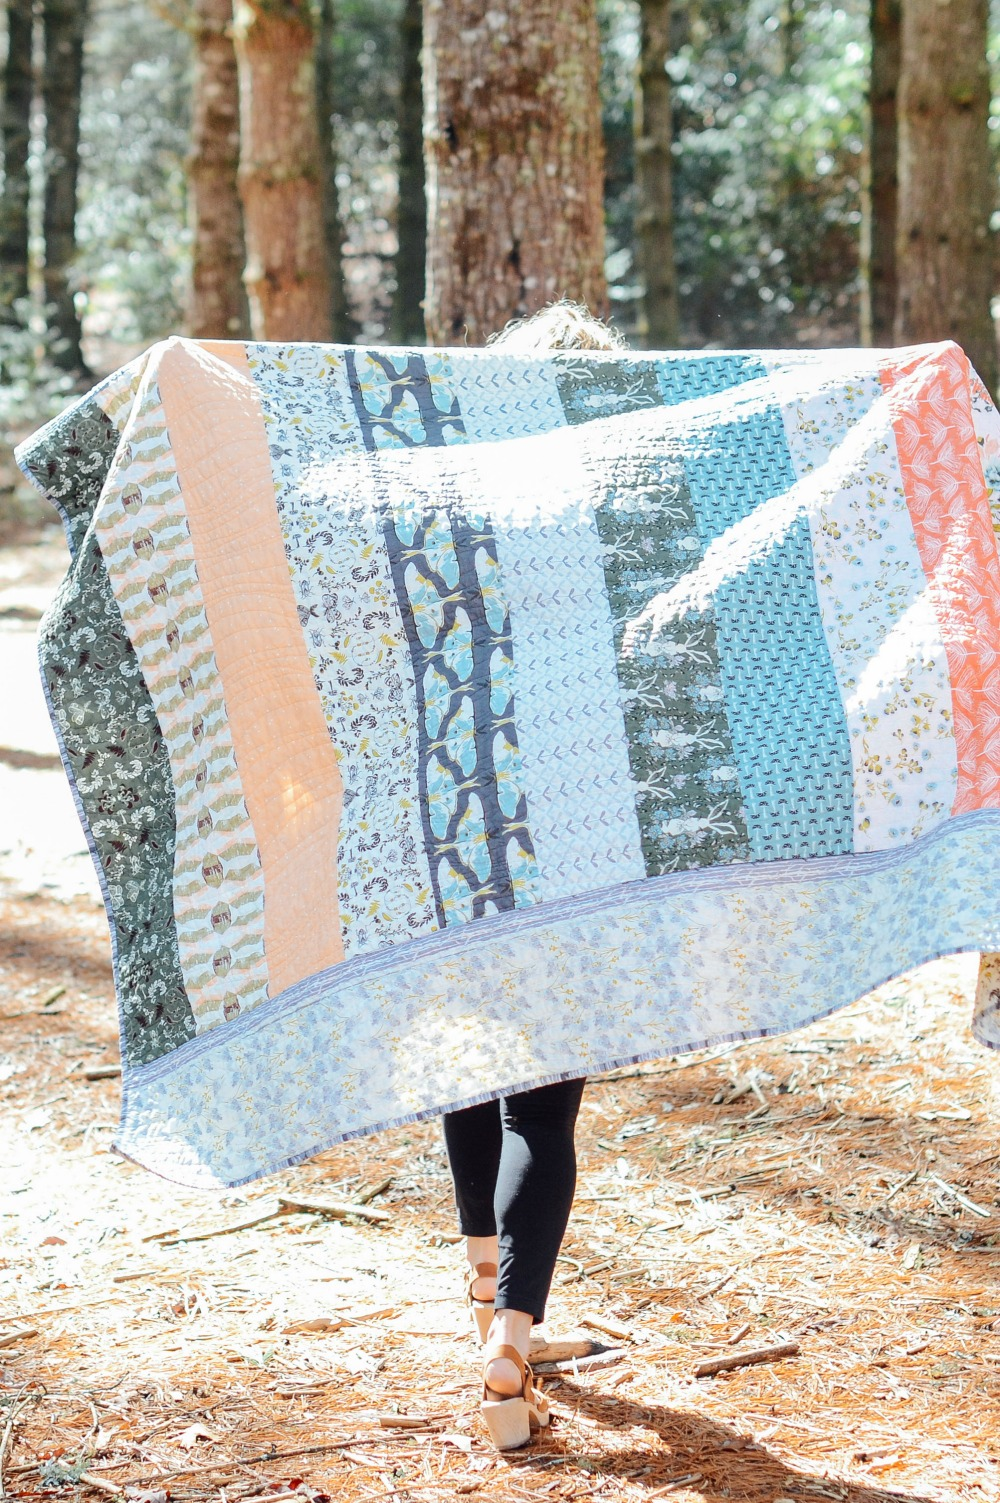 Pieced and Quilted by Sarah Overton. https://mycrowdednest.wordpress.com/             photo by Callie Lynch